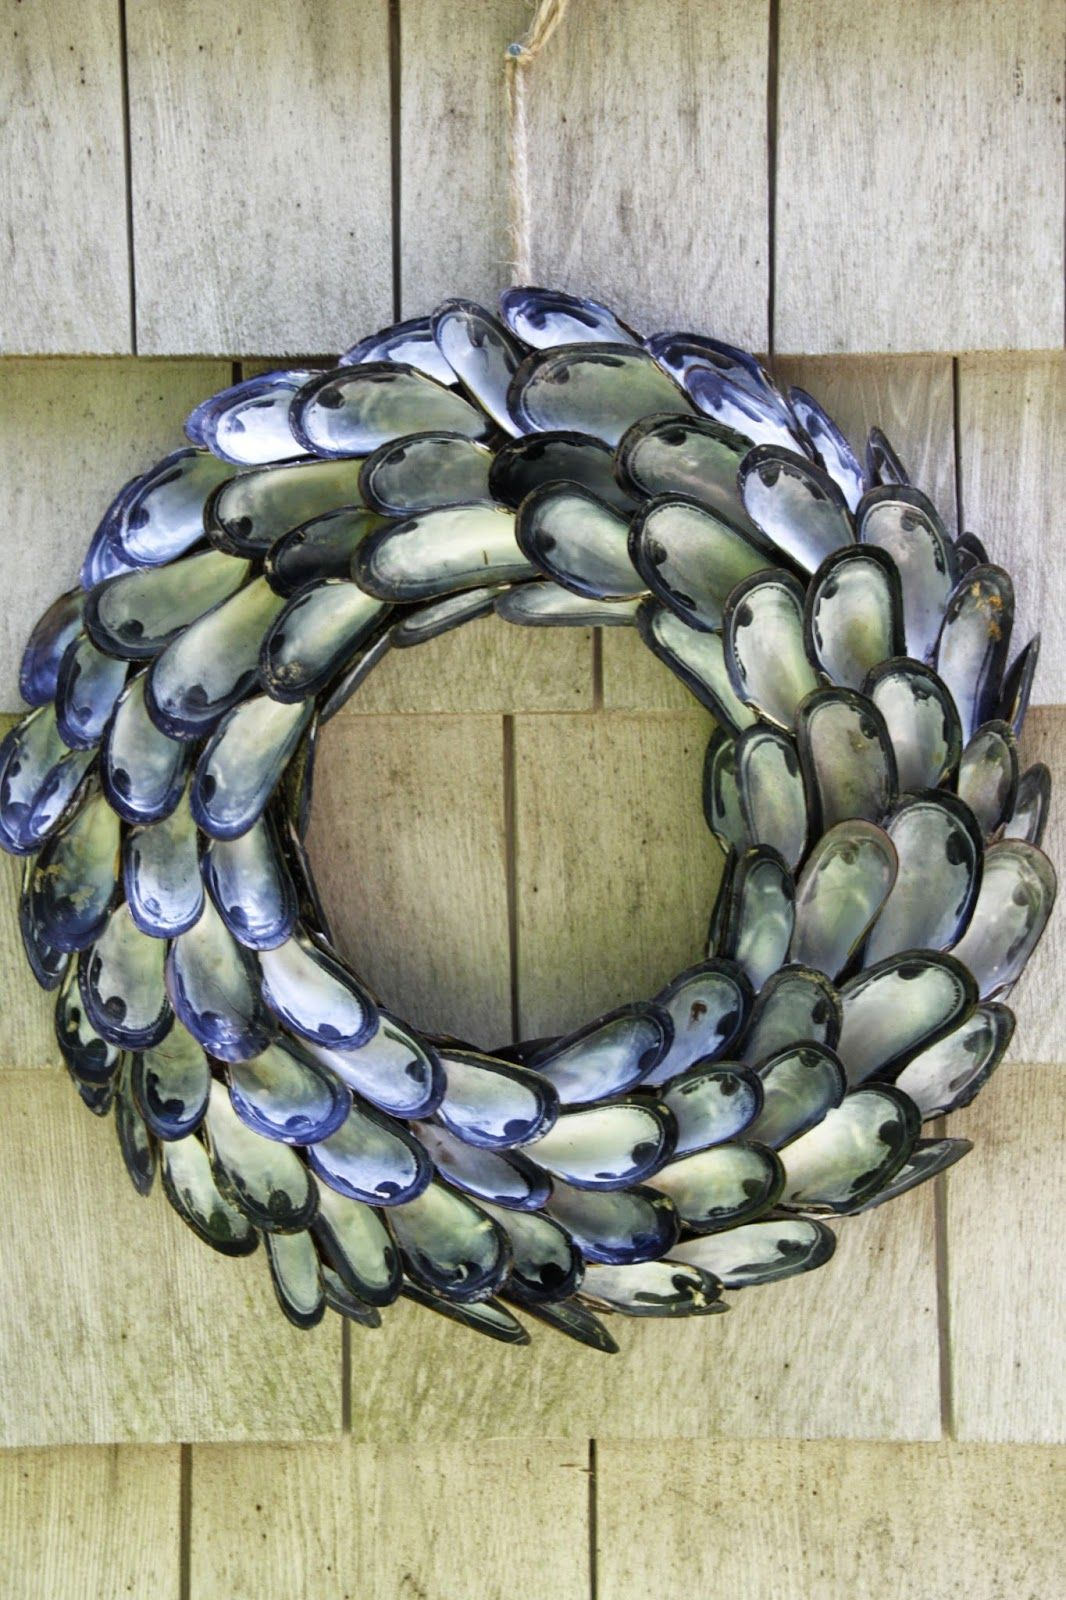 A Coastal Inspired Shell Wreath -   12 mussel shell crafts ideas